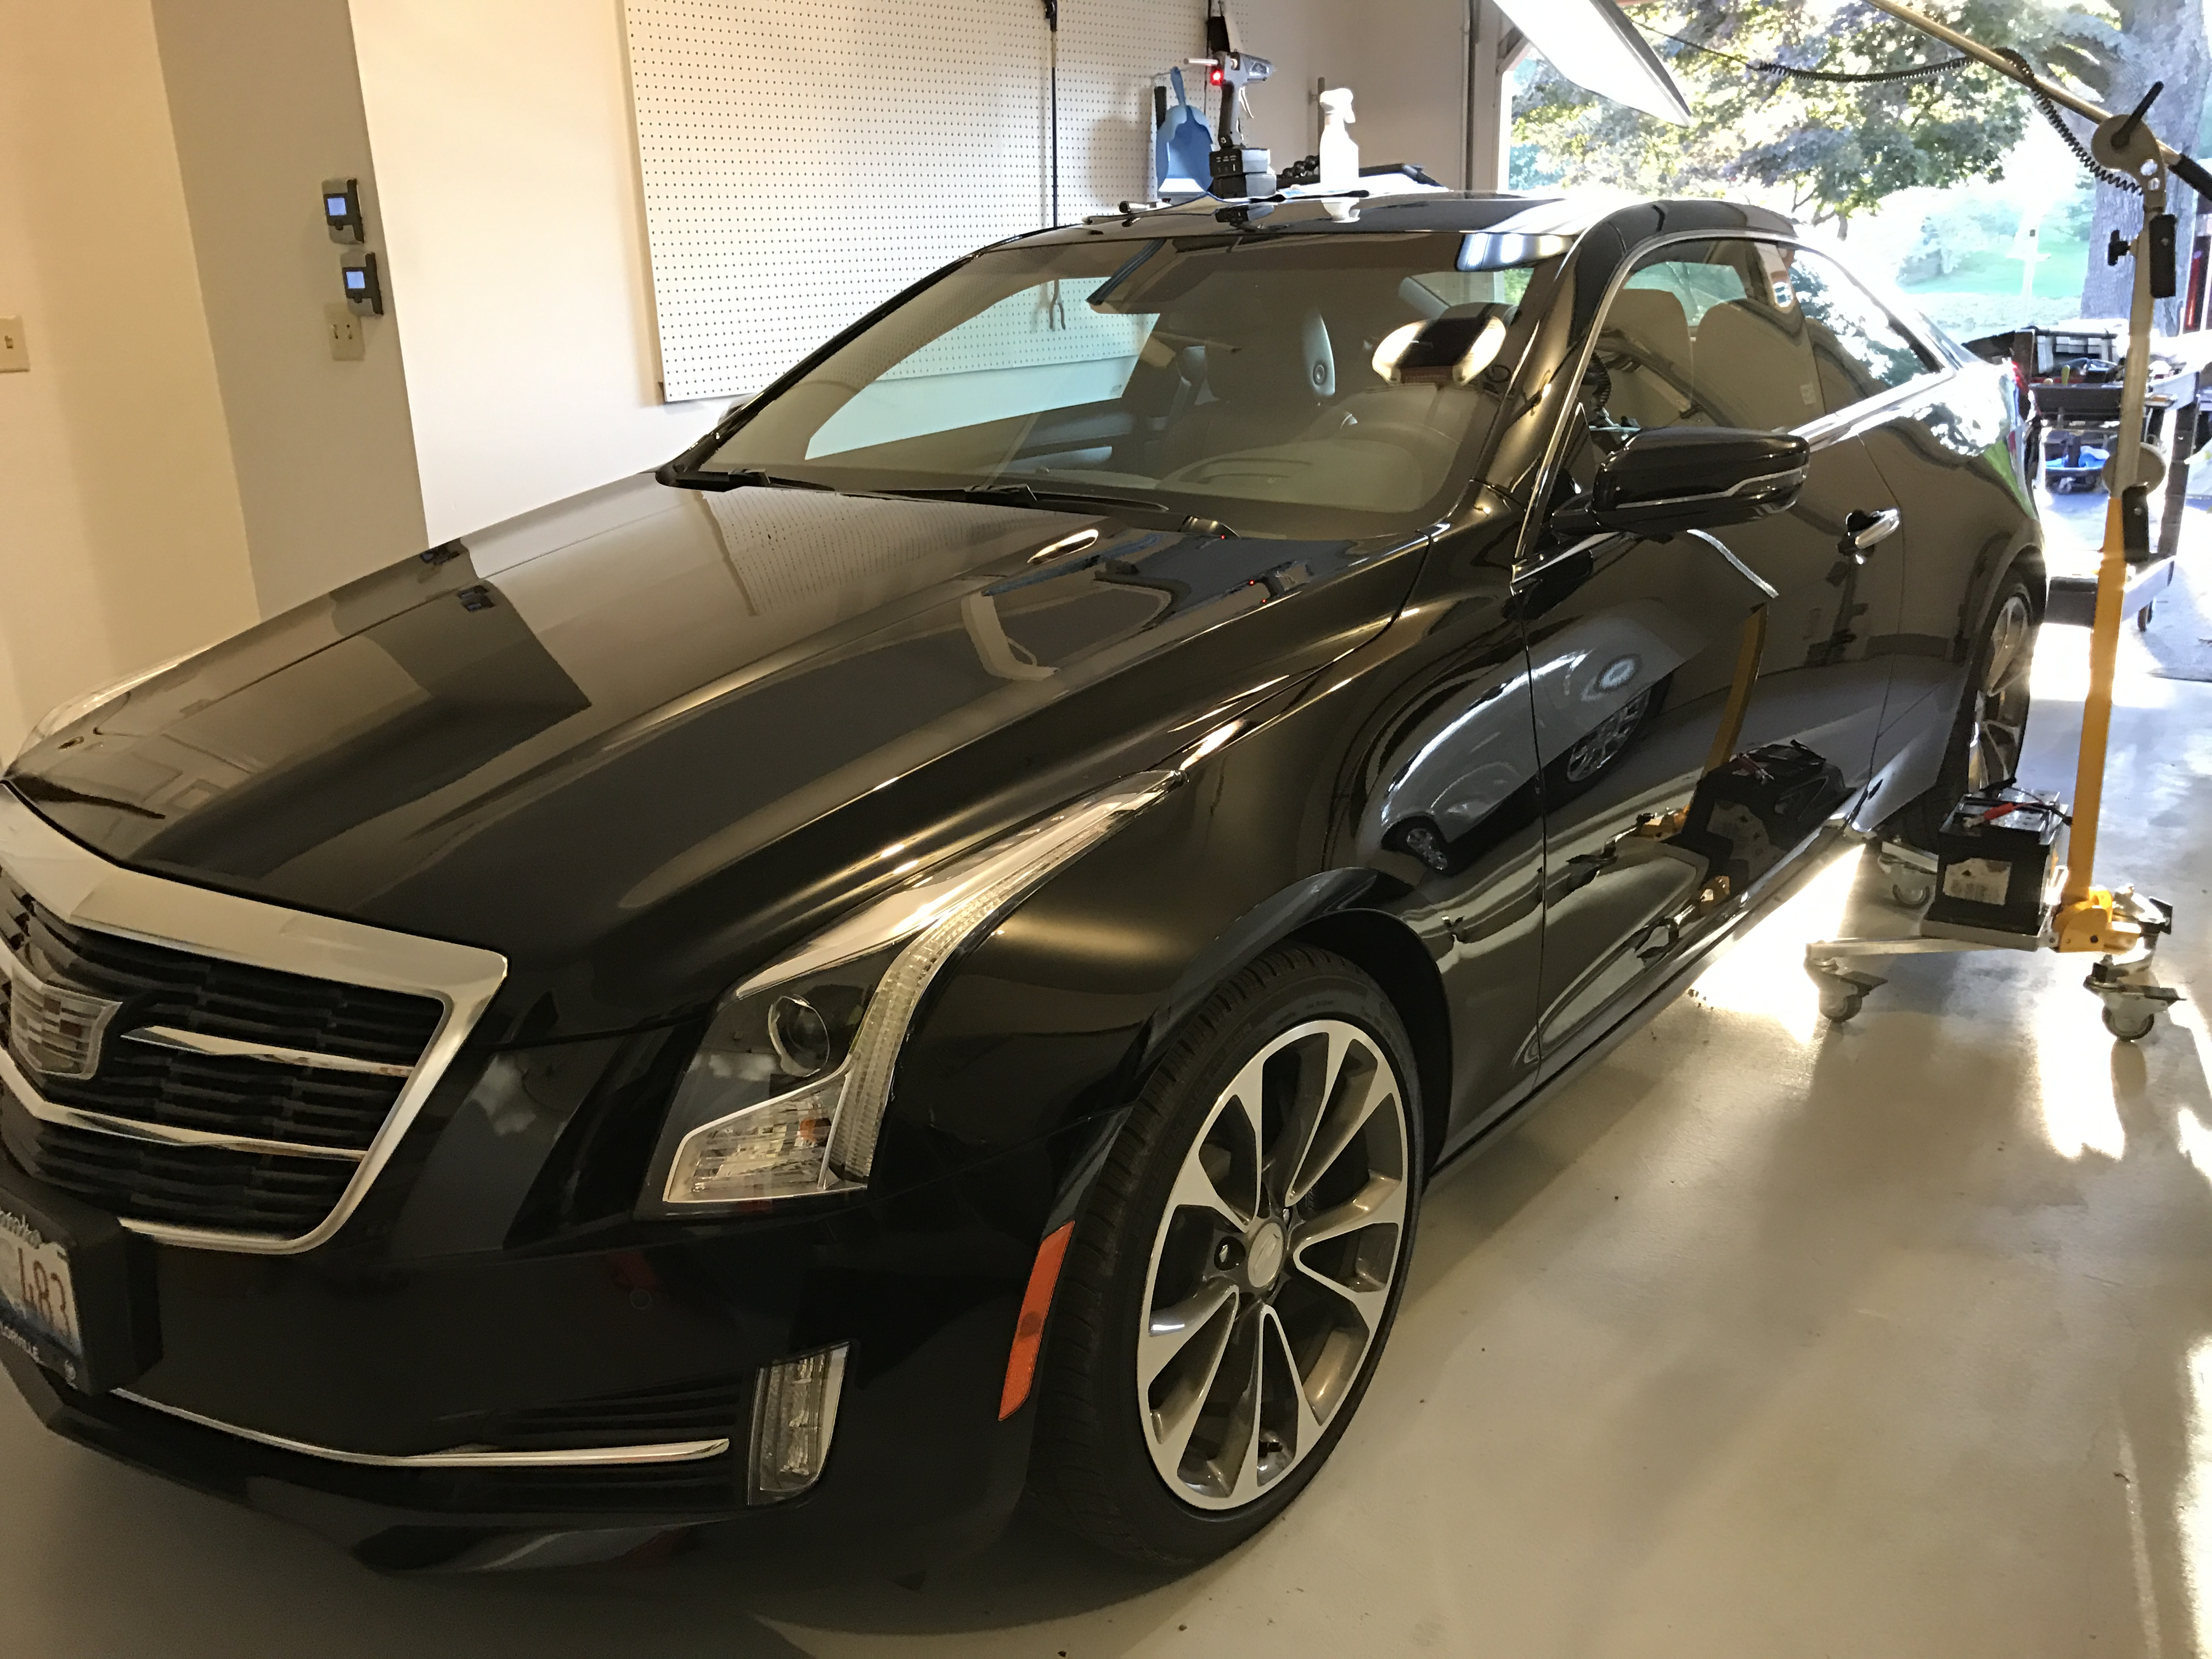 2016 Cadillac ATS Set up for dent in roof from a acorn. Springfield, IL. Taylorville, IL. http://217Dent.com Paintless dent remvoal